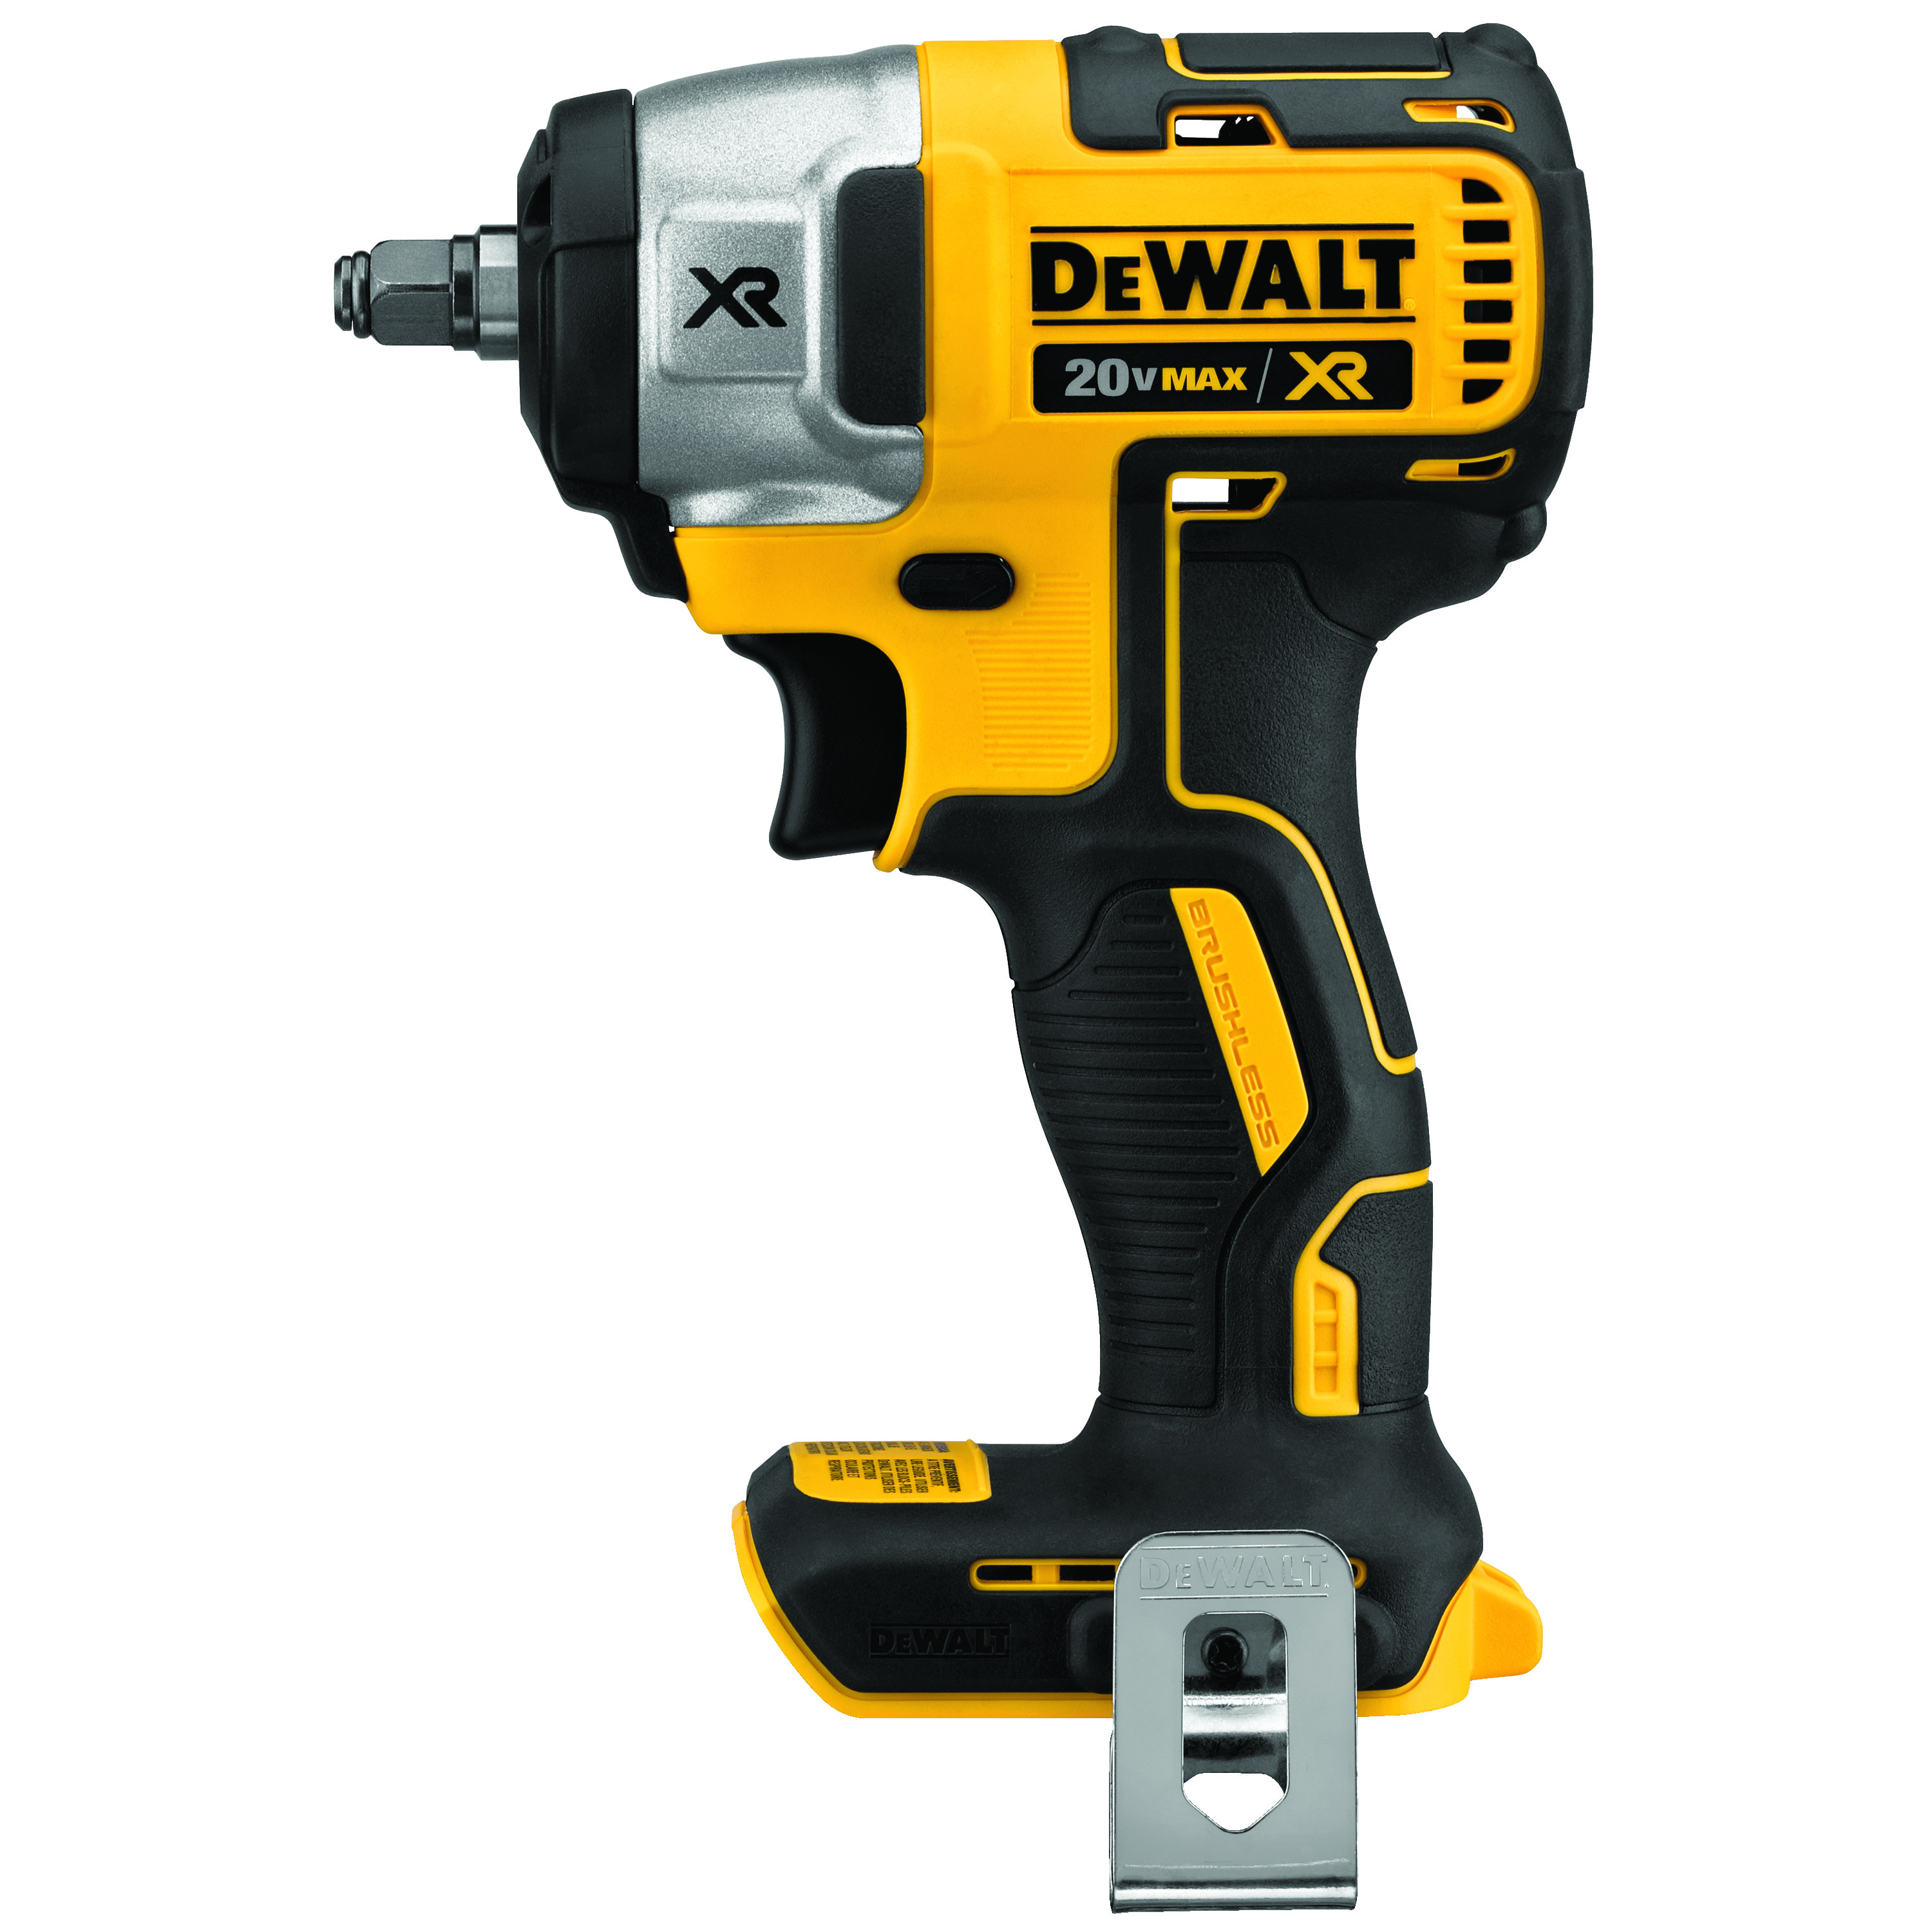 DeWALT® 20V MAX* MATRIX™ DCF890B Cordless Impact Wrench, 3/8 in Straight Drive, 2700 bpm, 150 ft-lb Torque, 20 V, 5-1/2 in OAL